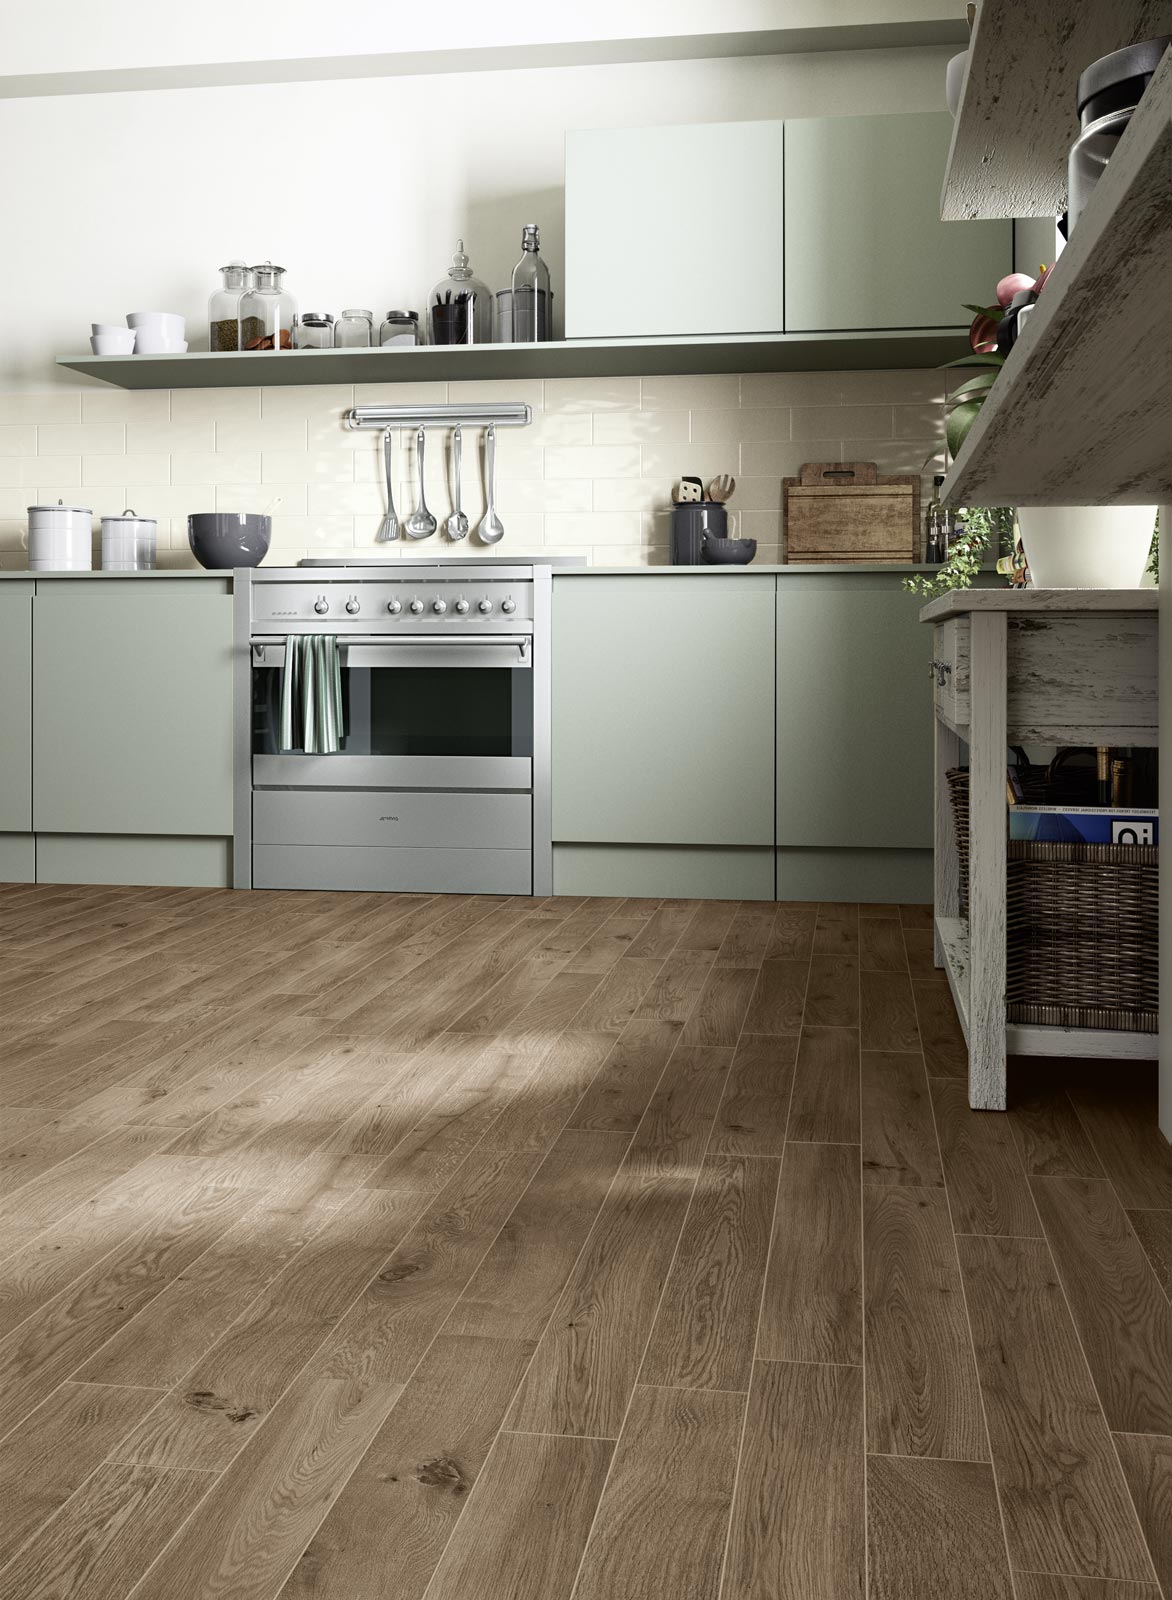 Woodessence porcelain stoneware parquet effect ragno woodessence ceramic tiles ragno6578 dailygadgetfo Image collections